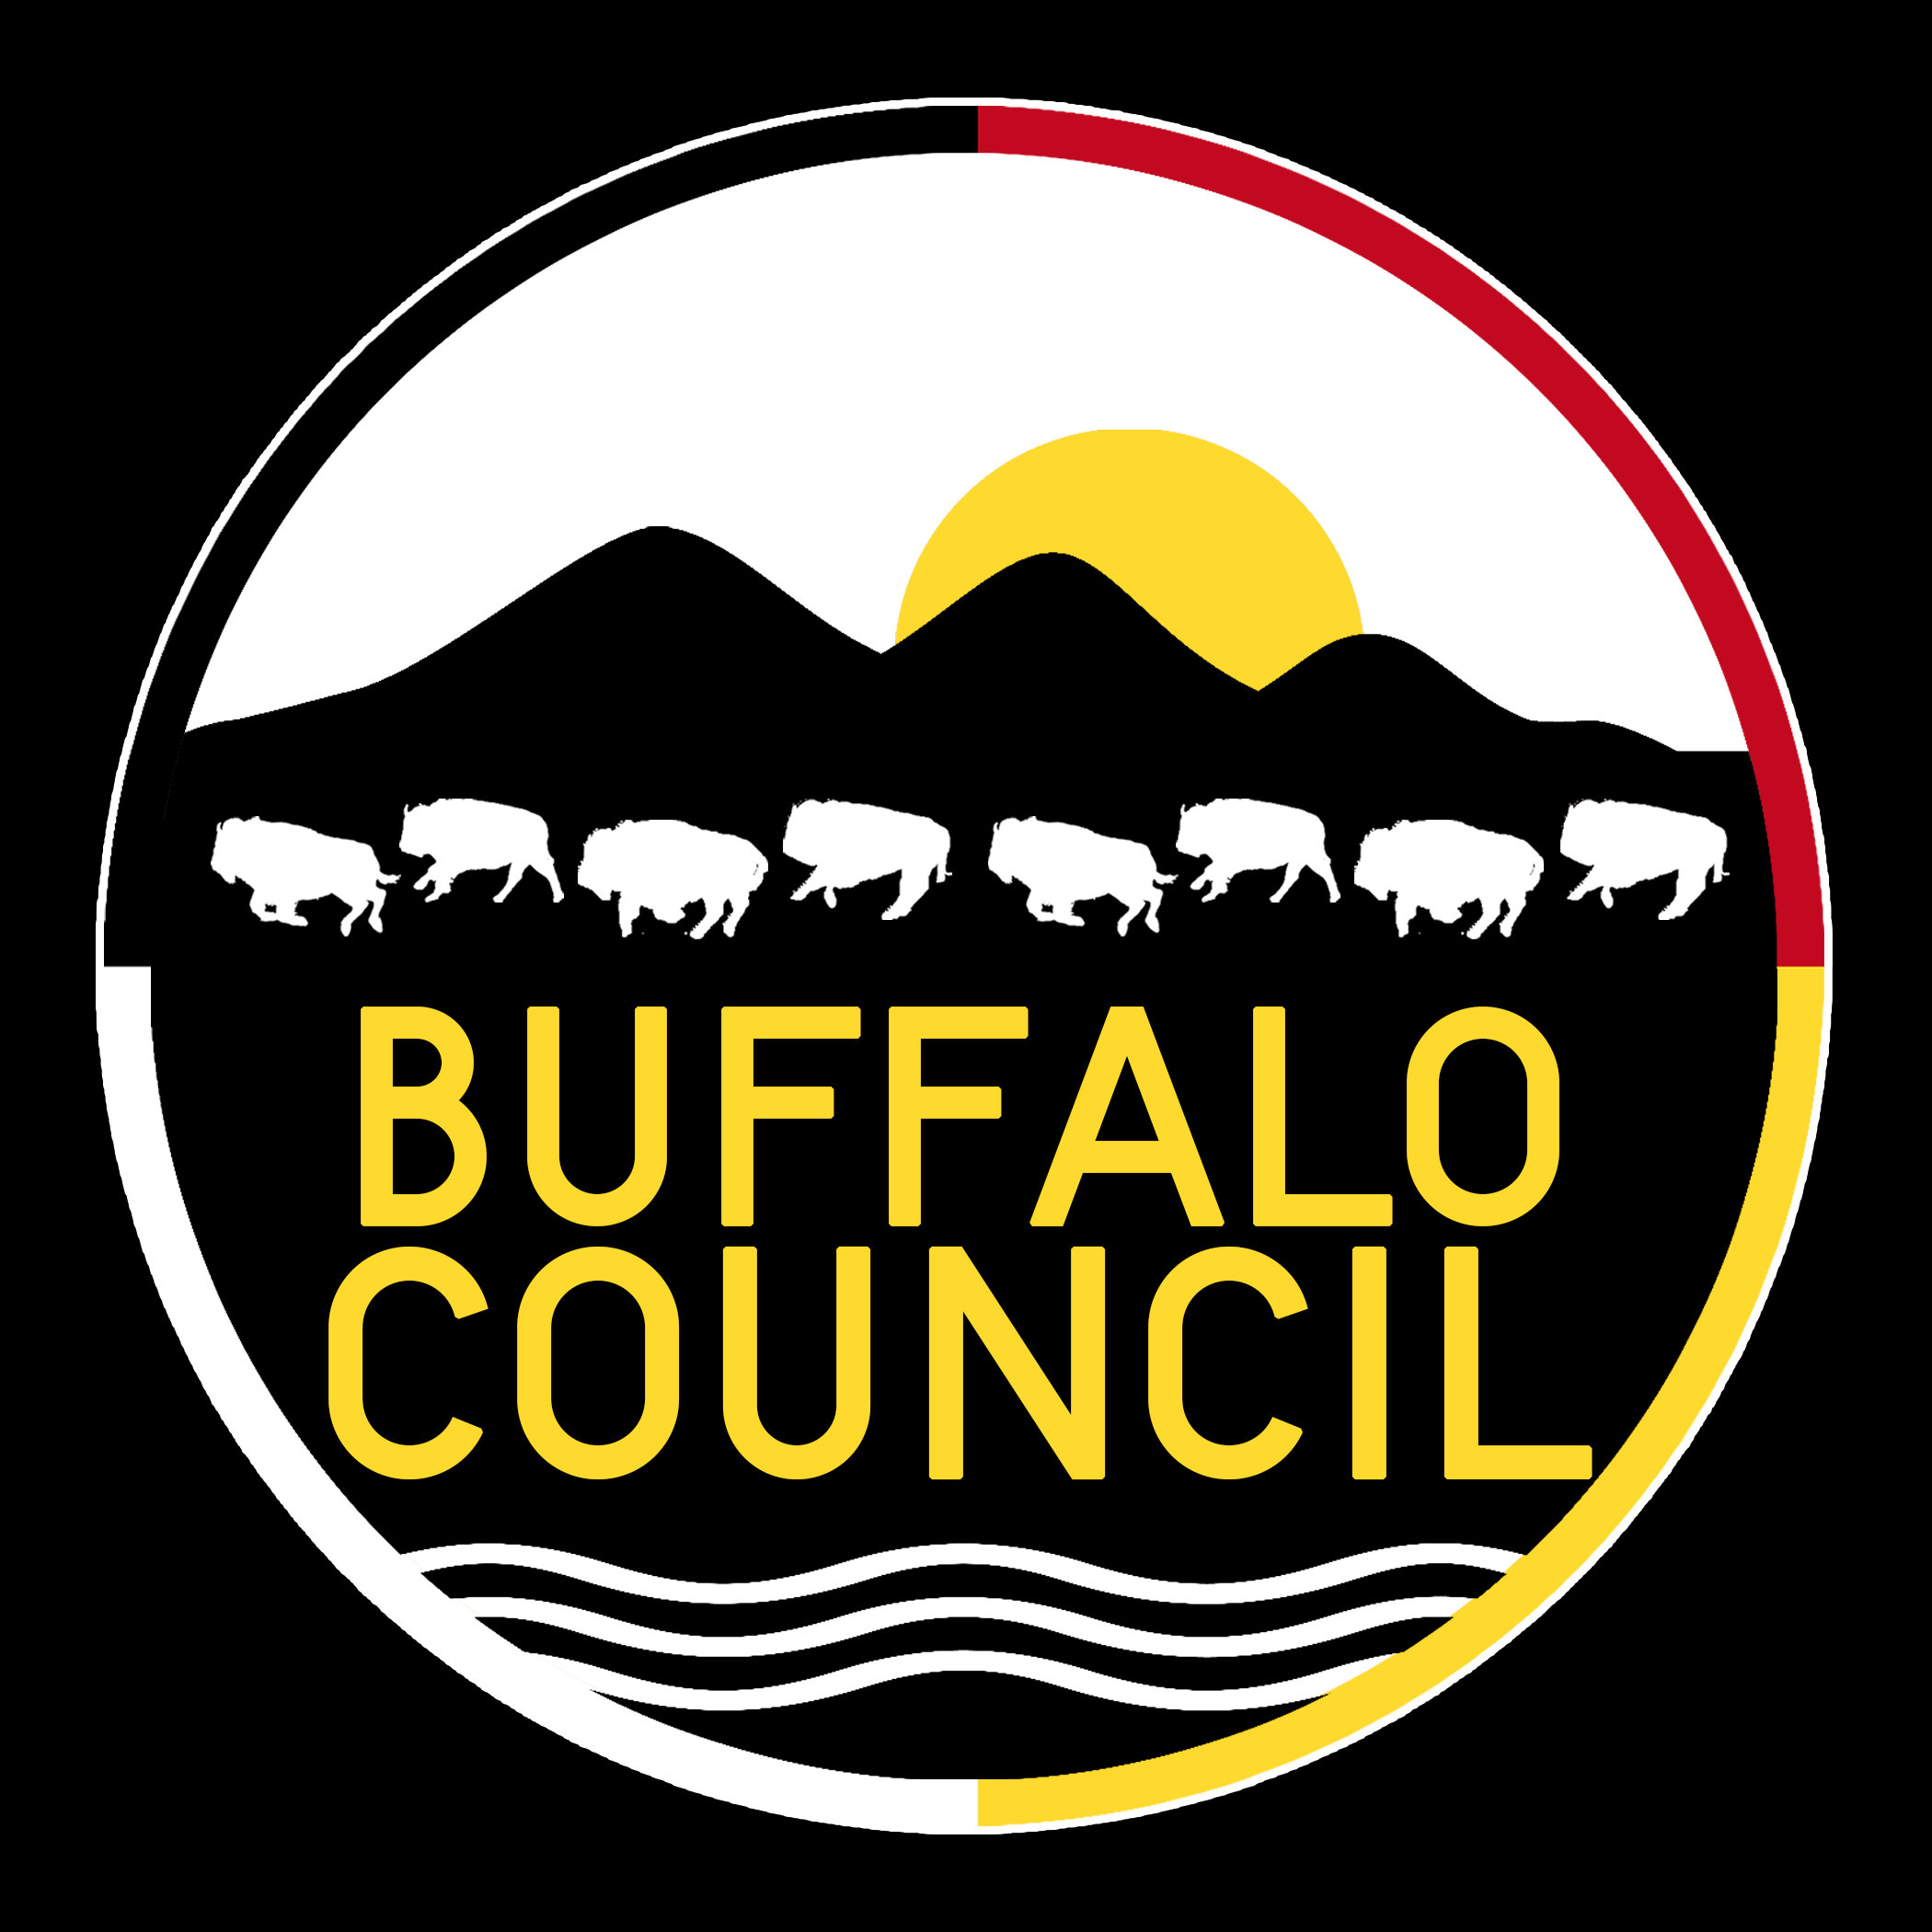 BuffaloCouncilLogo.png